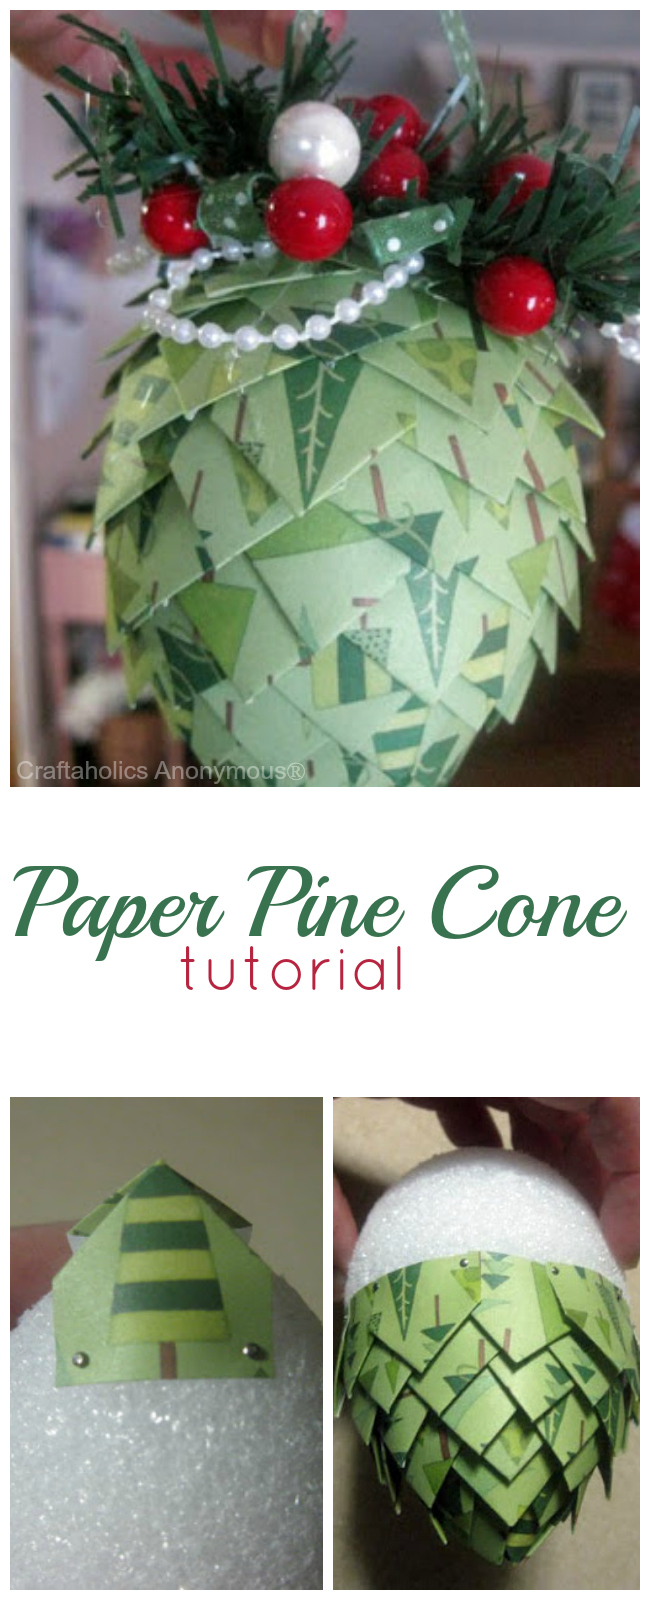 paper pine cone tutorial. These are great for ornaments, garlands, or gift toppers!